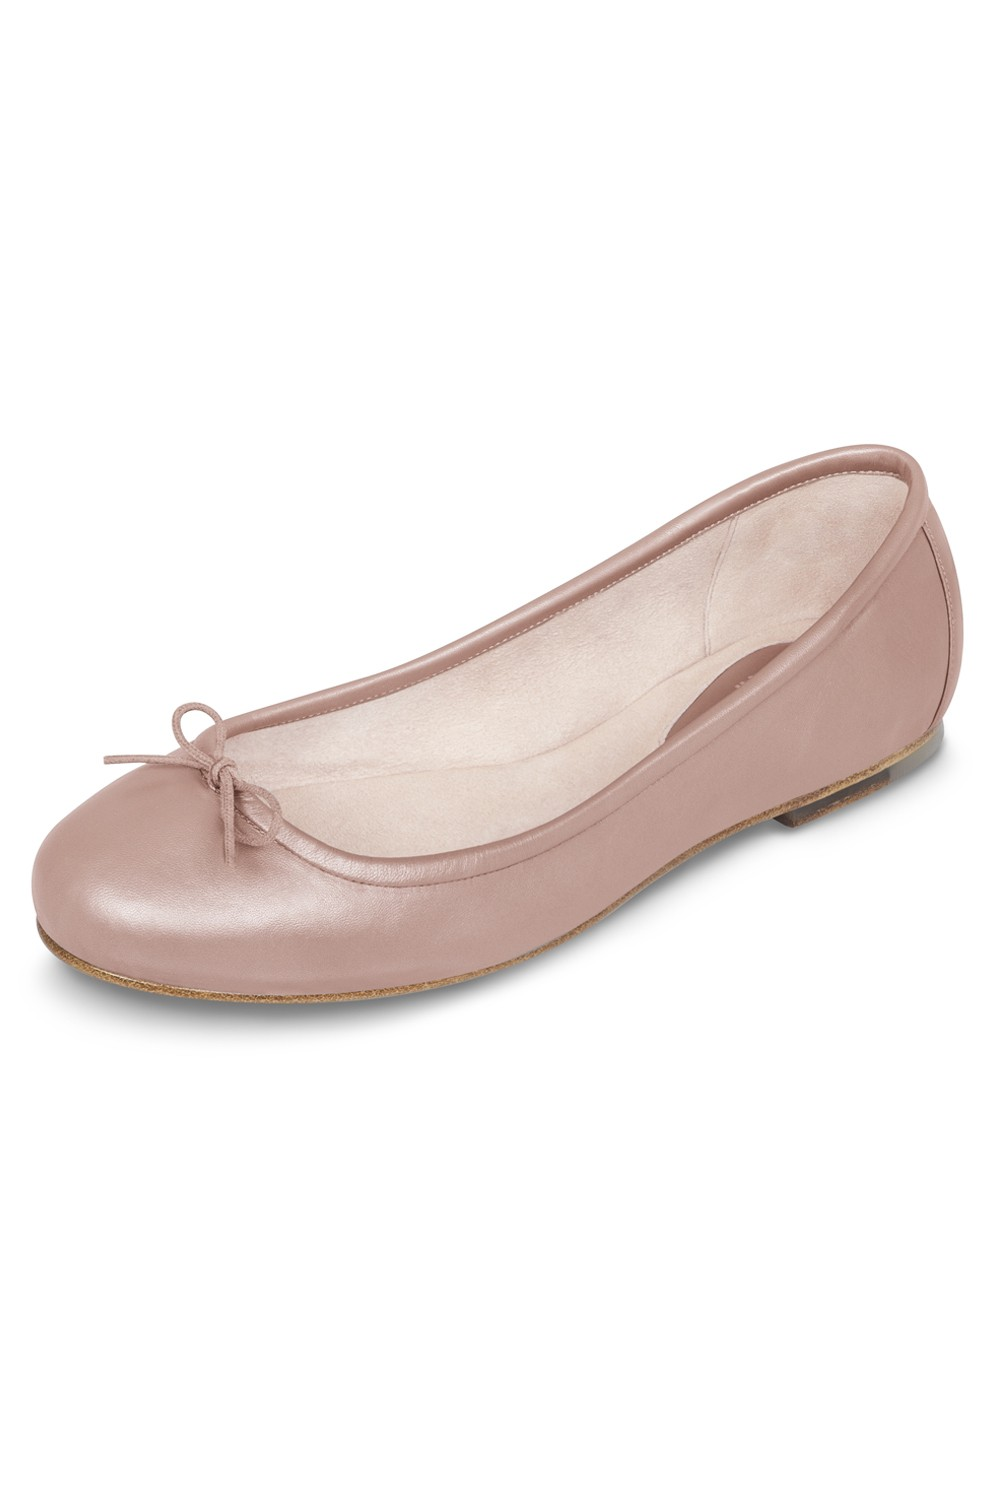 Fonteyn Ladies Ballet Flat Womens Fashion Shoes